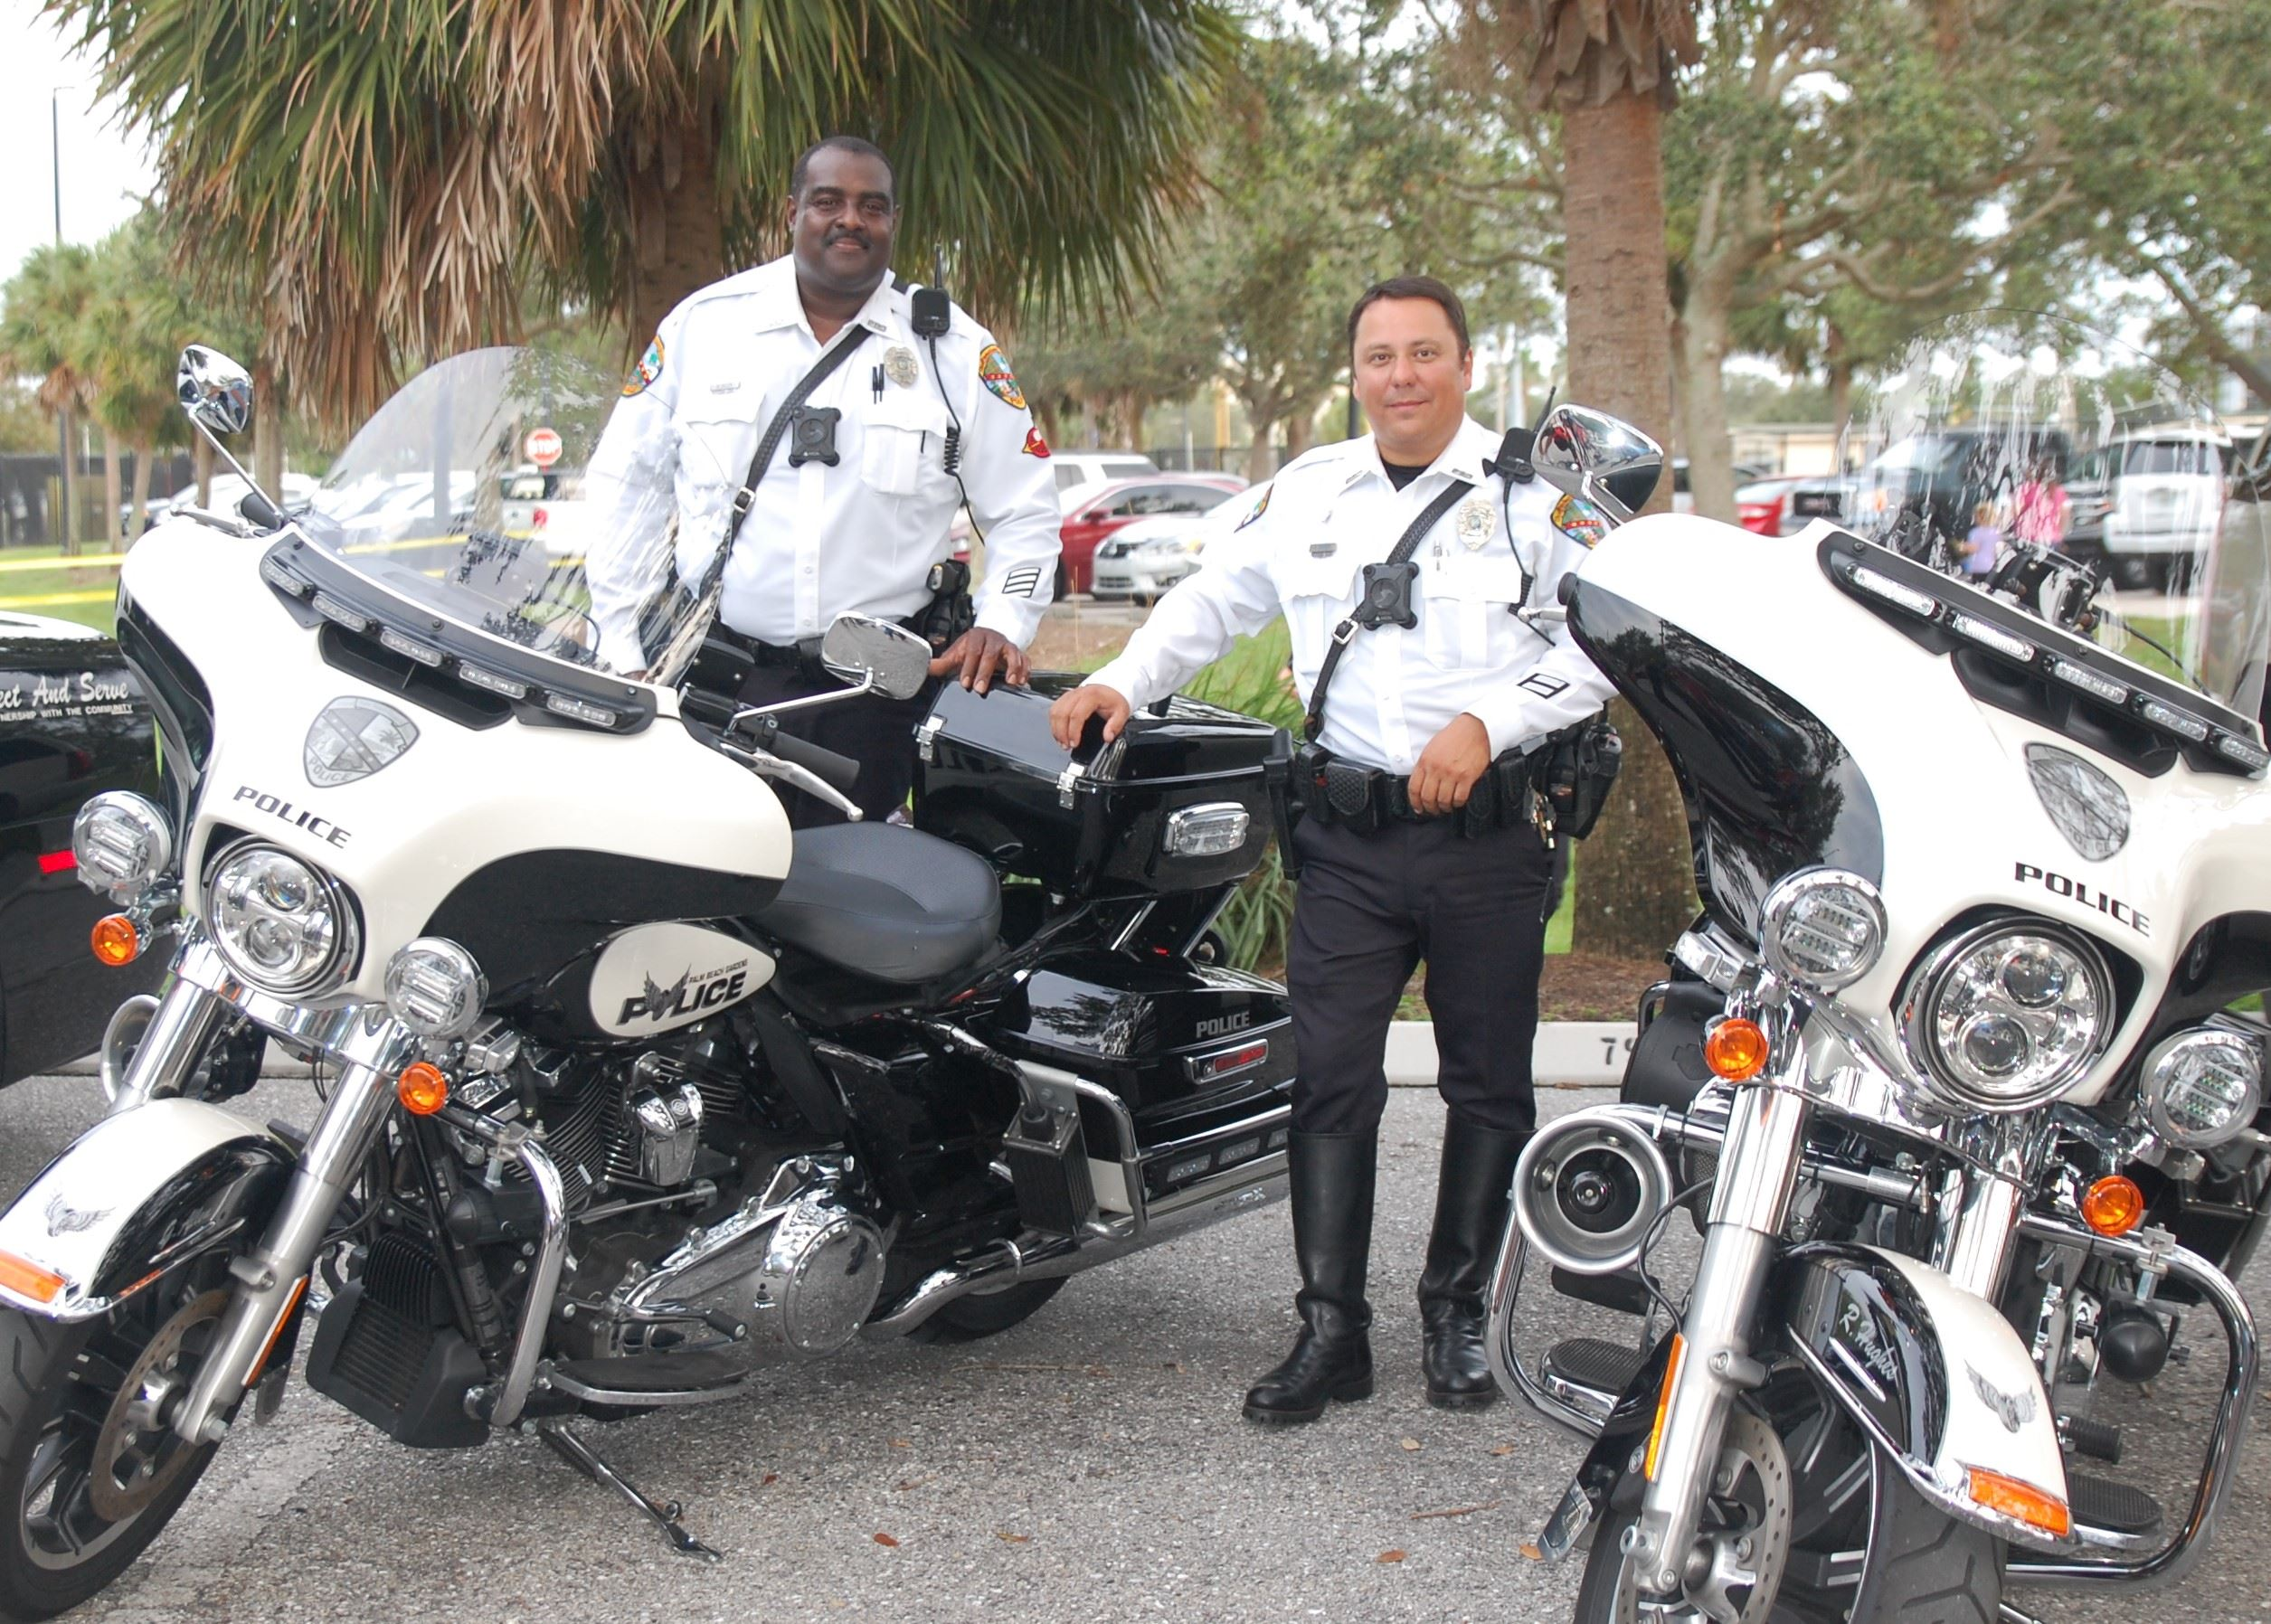 Motor Officers Standing Next to Motorcycles 2018